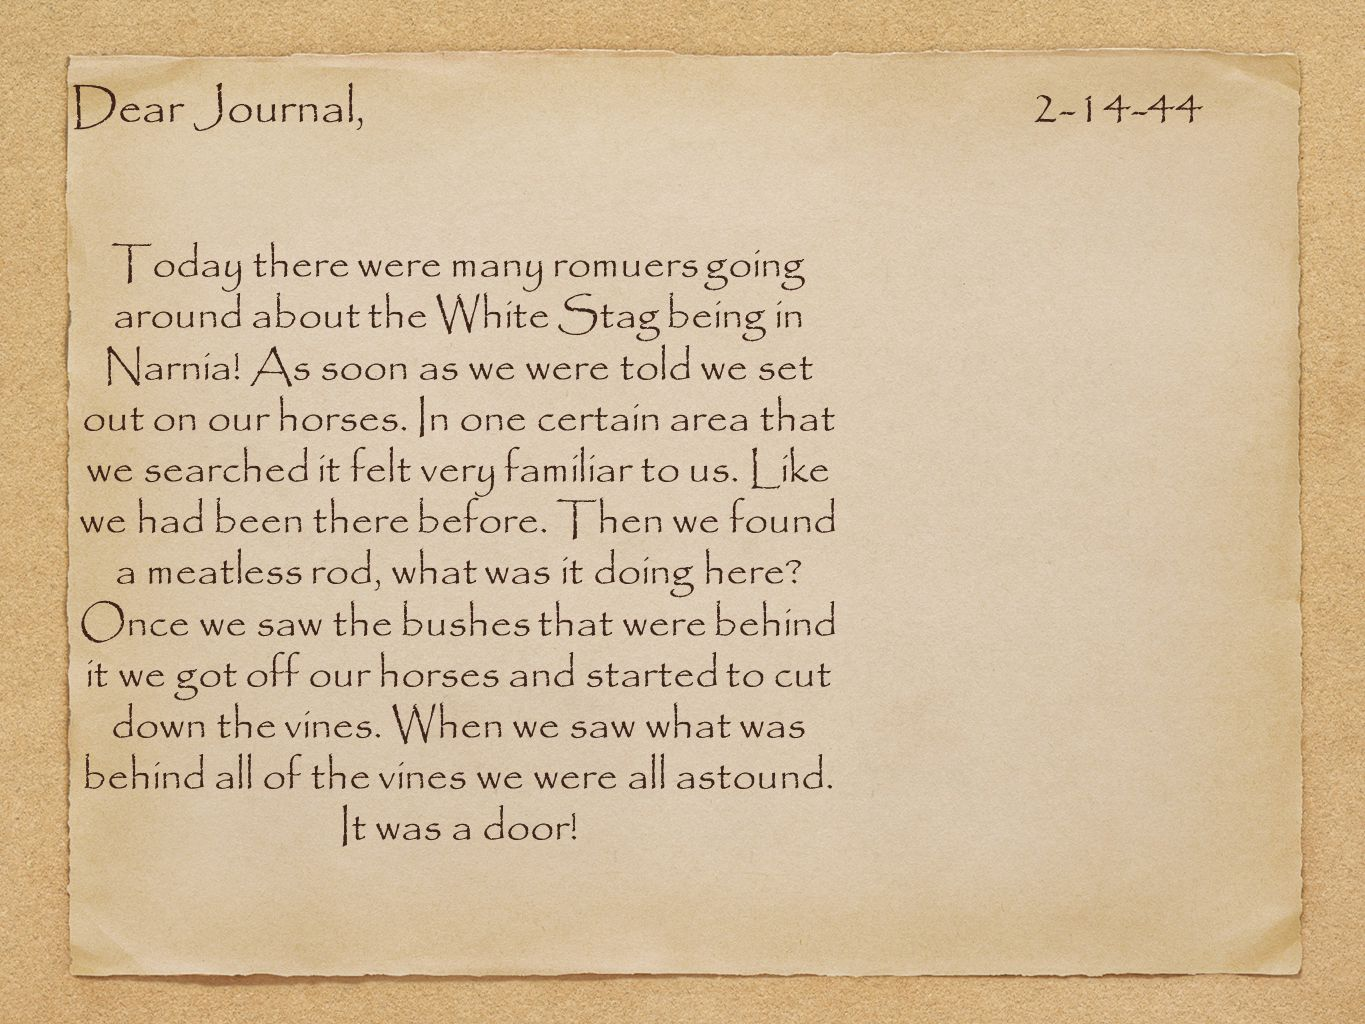 Dear Journal, 2-14-44.